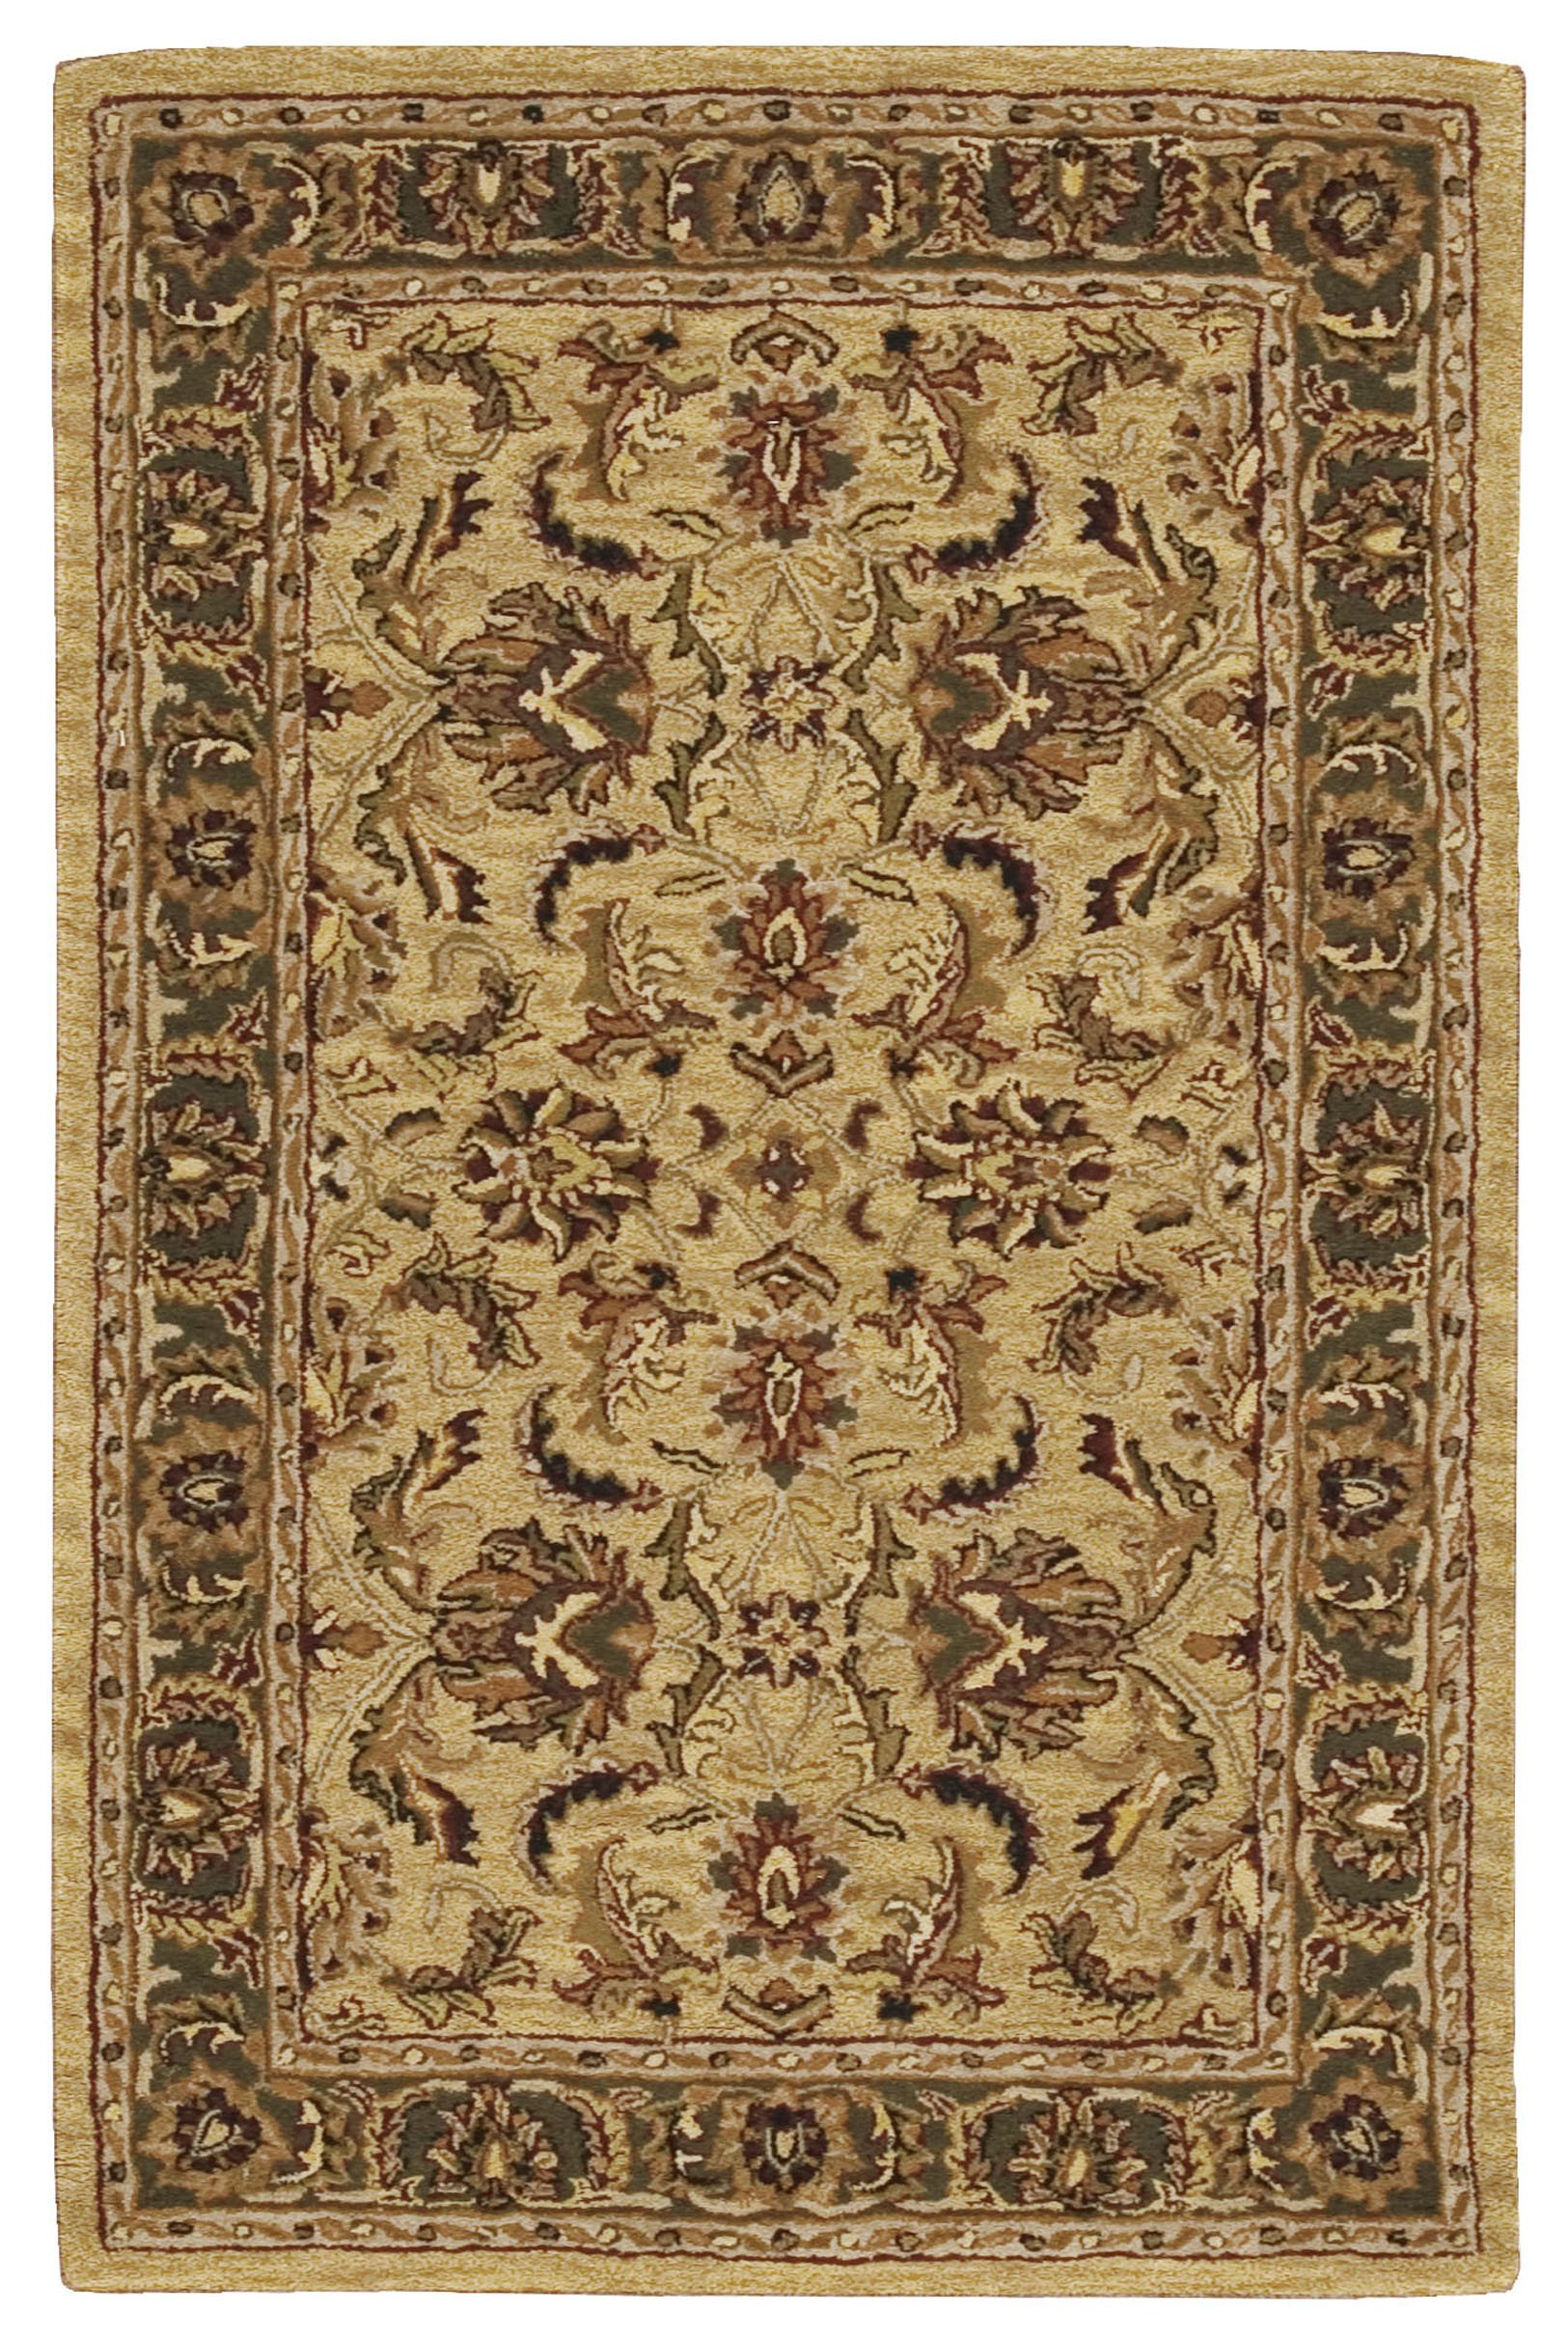 Nourison India House (IH17) Gold Rectangle Area Rug, 2-Feet by 3-Feet (2' x 3') by Nourison (Image #1)